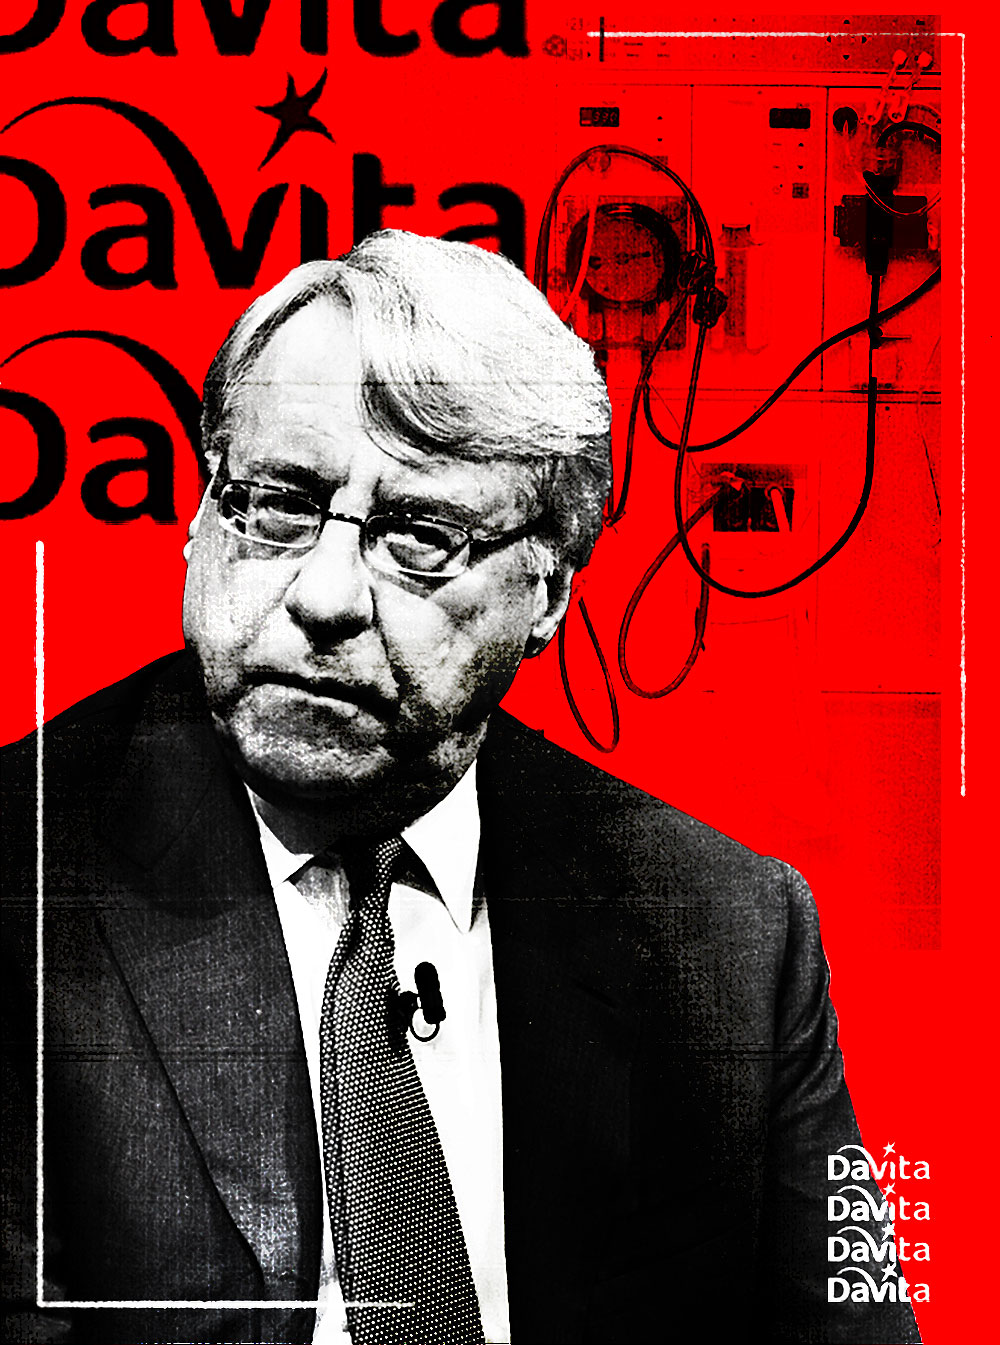 Berkshire Hathaway Bet Big on Dialysis Giant DaVita. Jim Chanos Thinks It's a Scam.